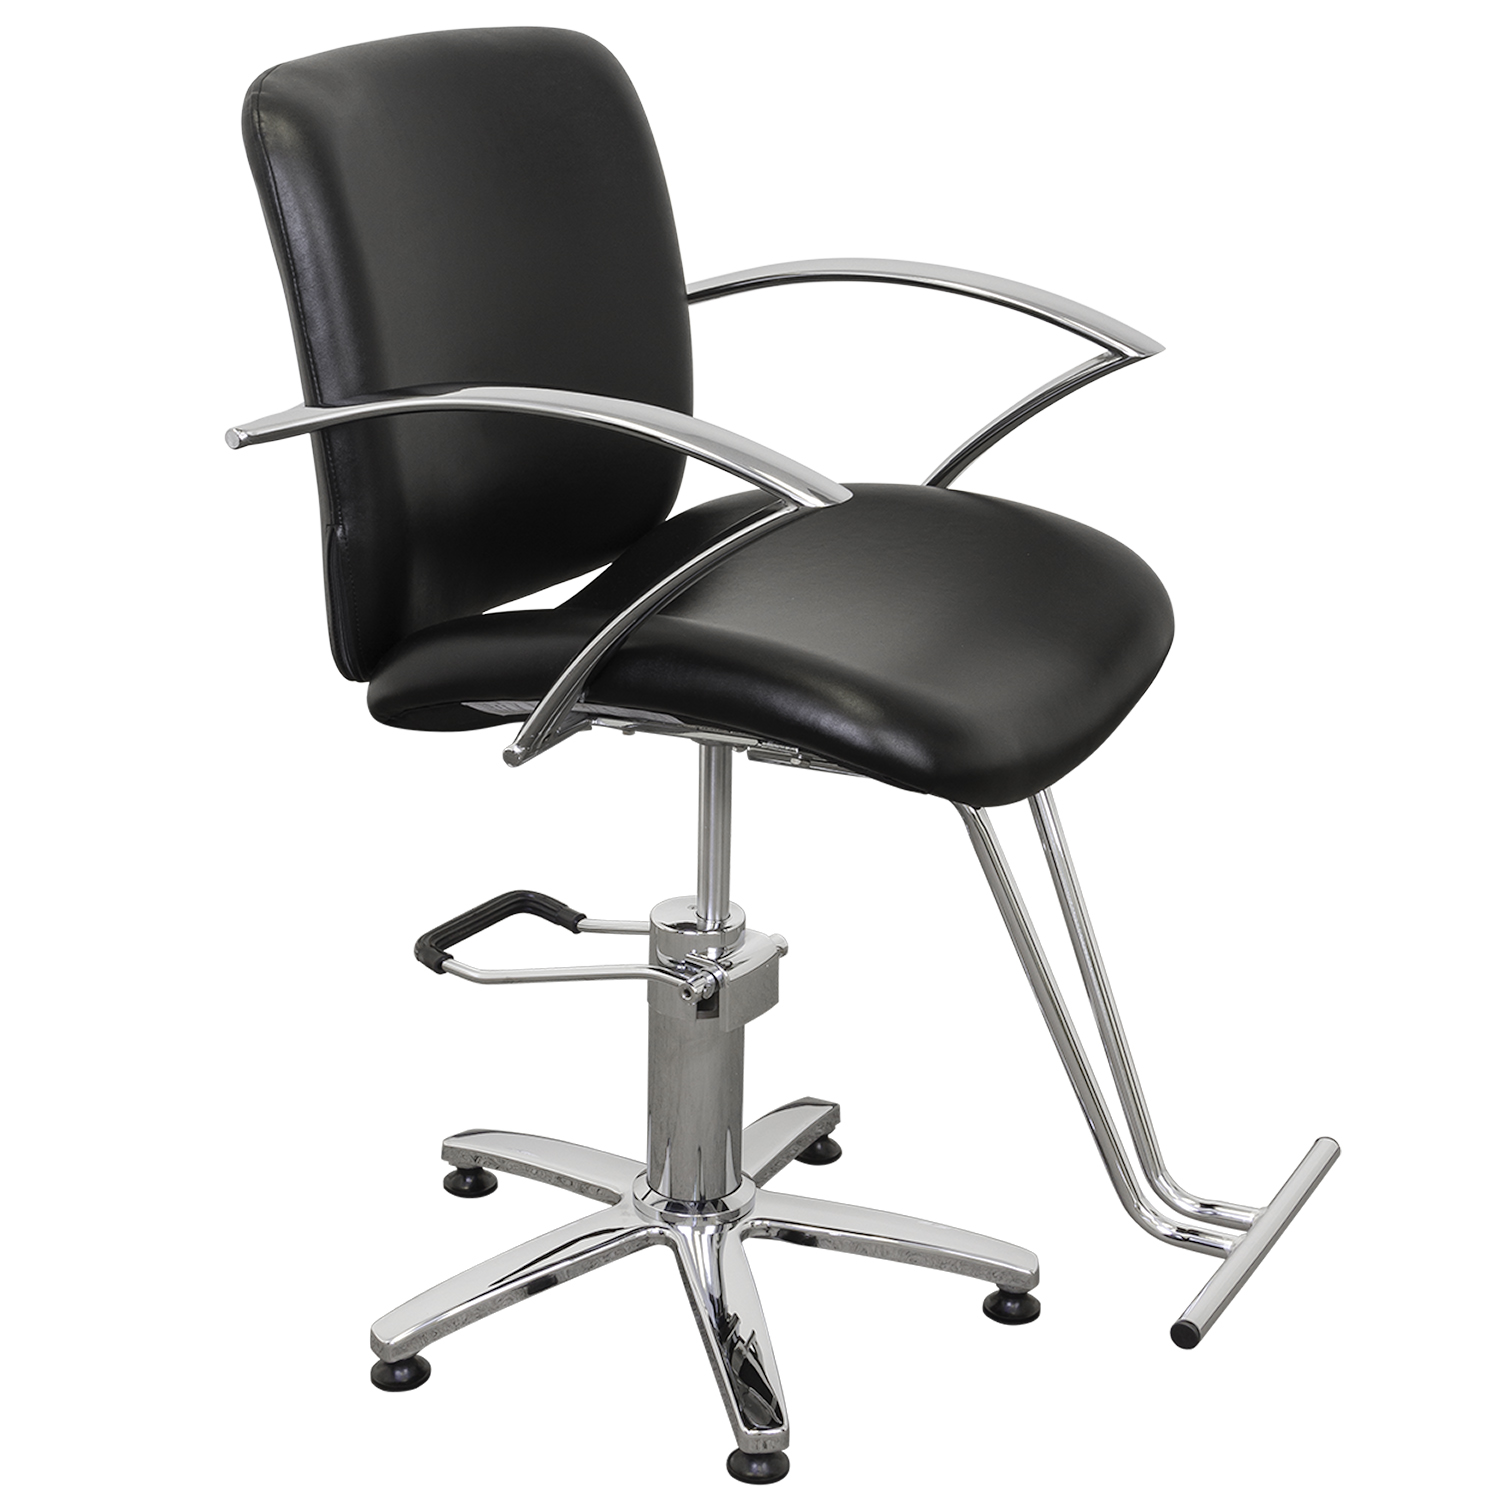 Weston II Styling Chair alternative product image 1